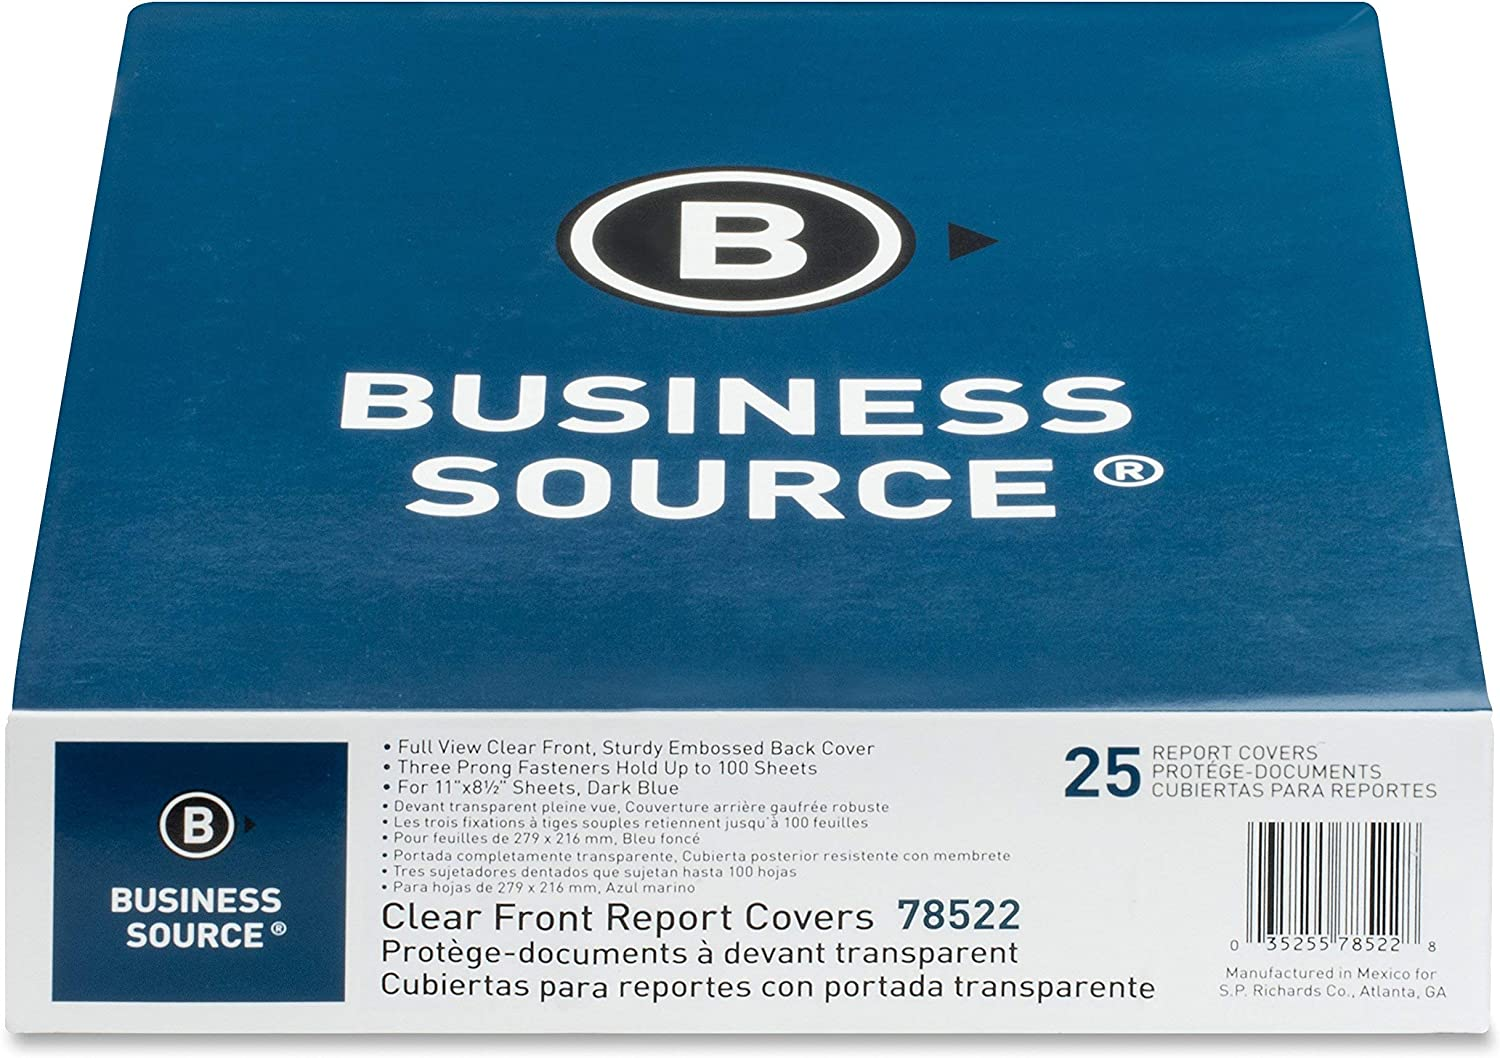 Business Source Clear Front Report Covers Renewed